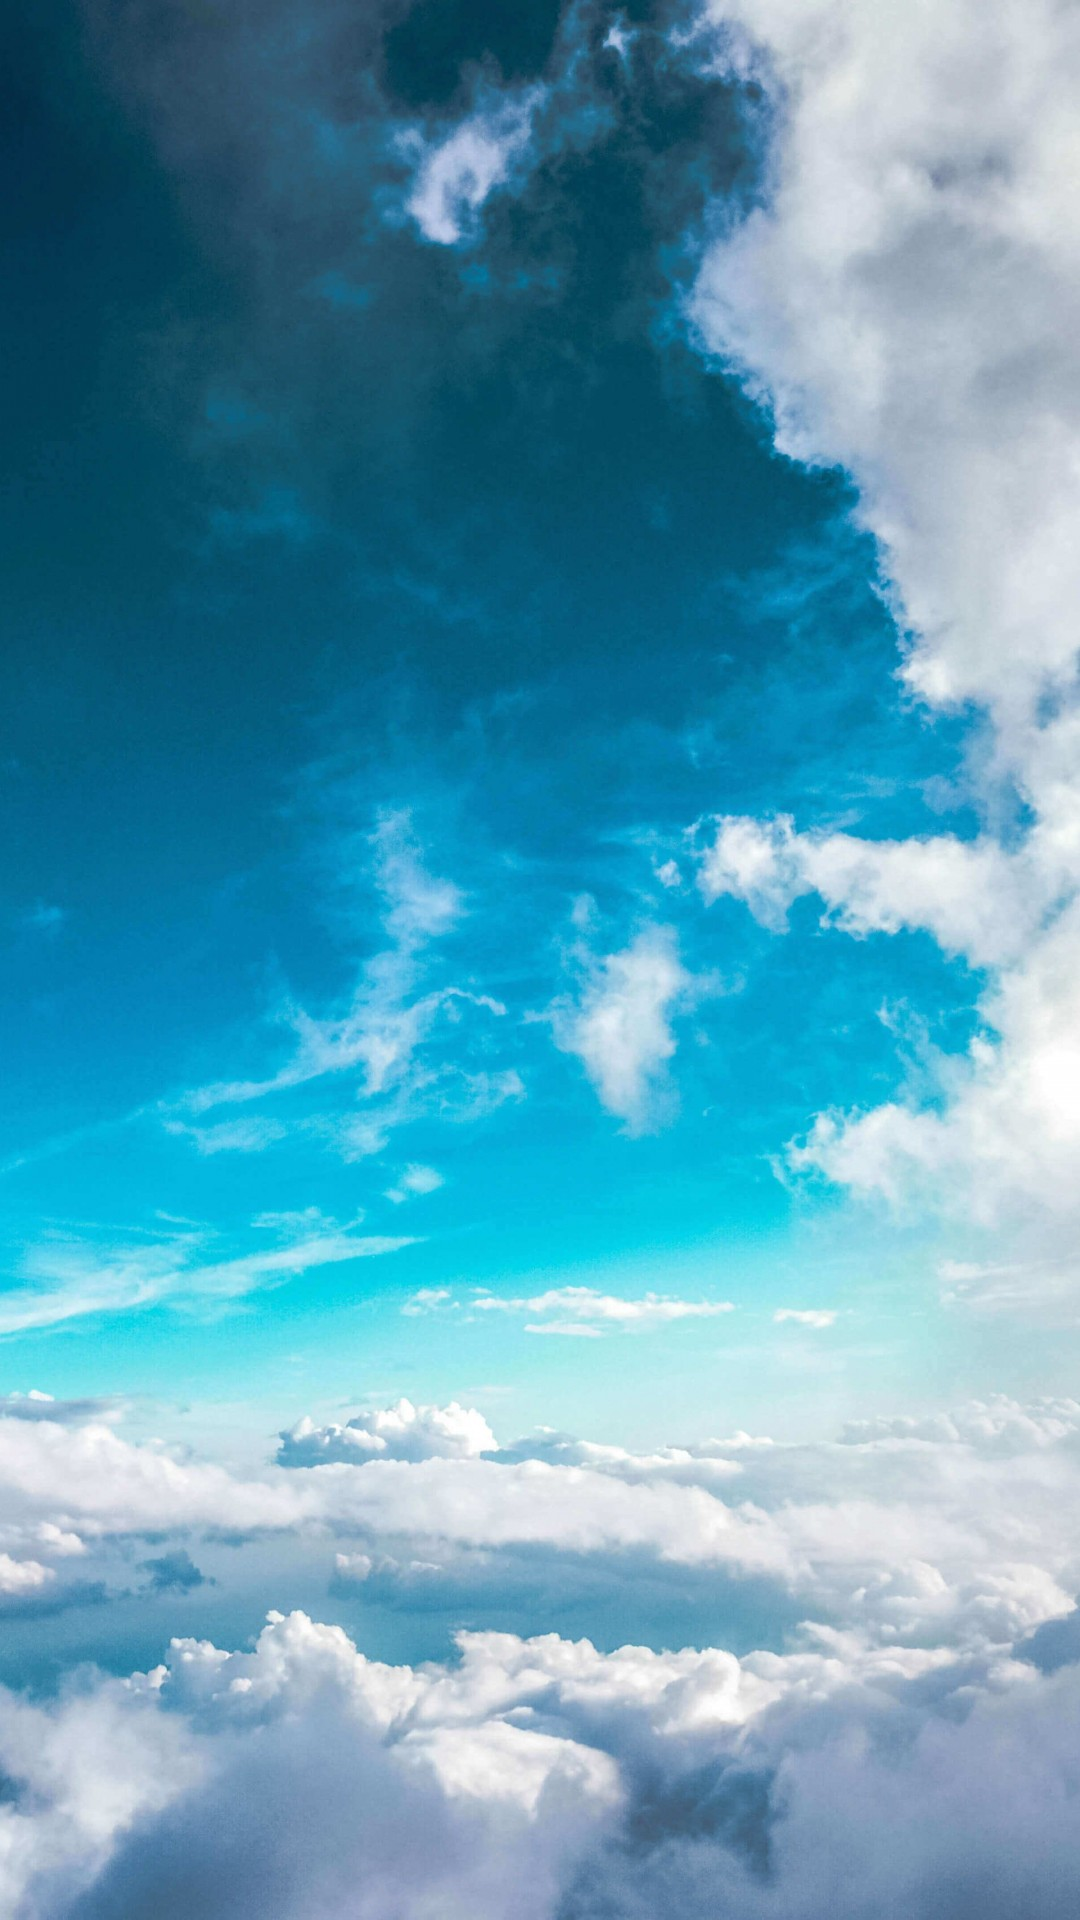 Cloudy Blue Sky Wallpaper for Google Nexus 5